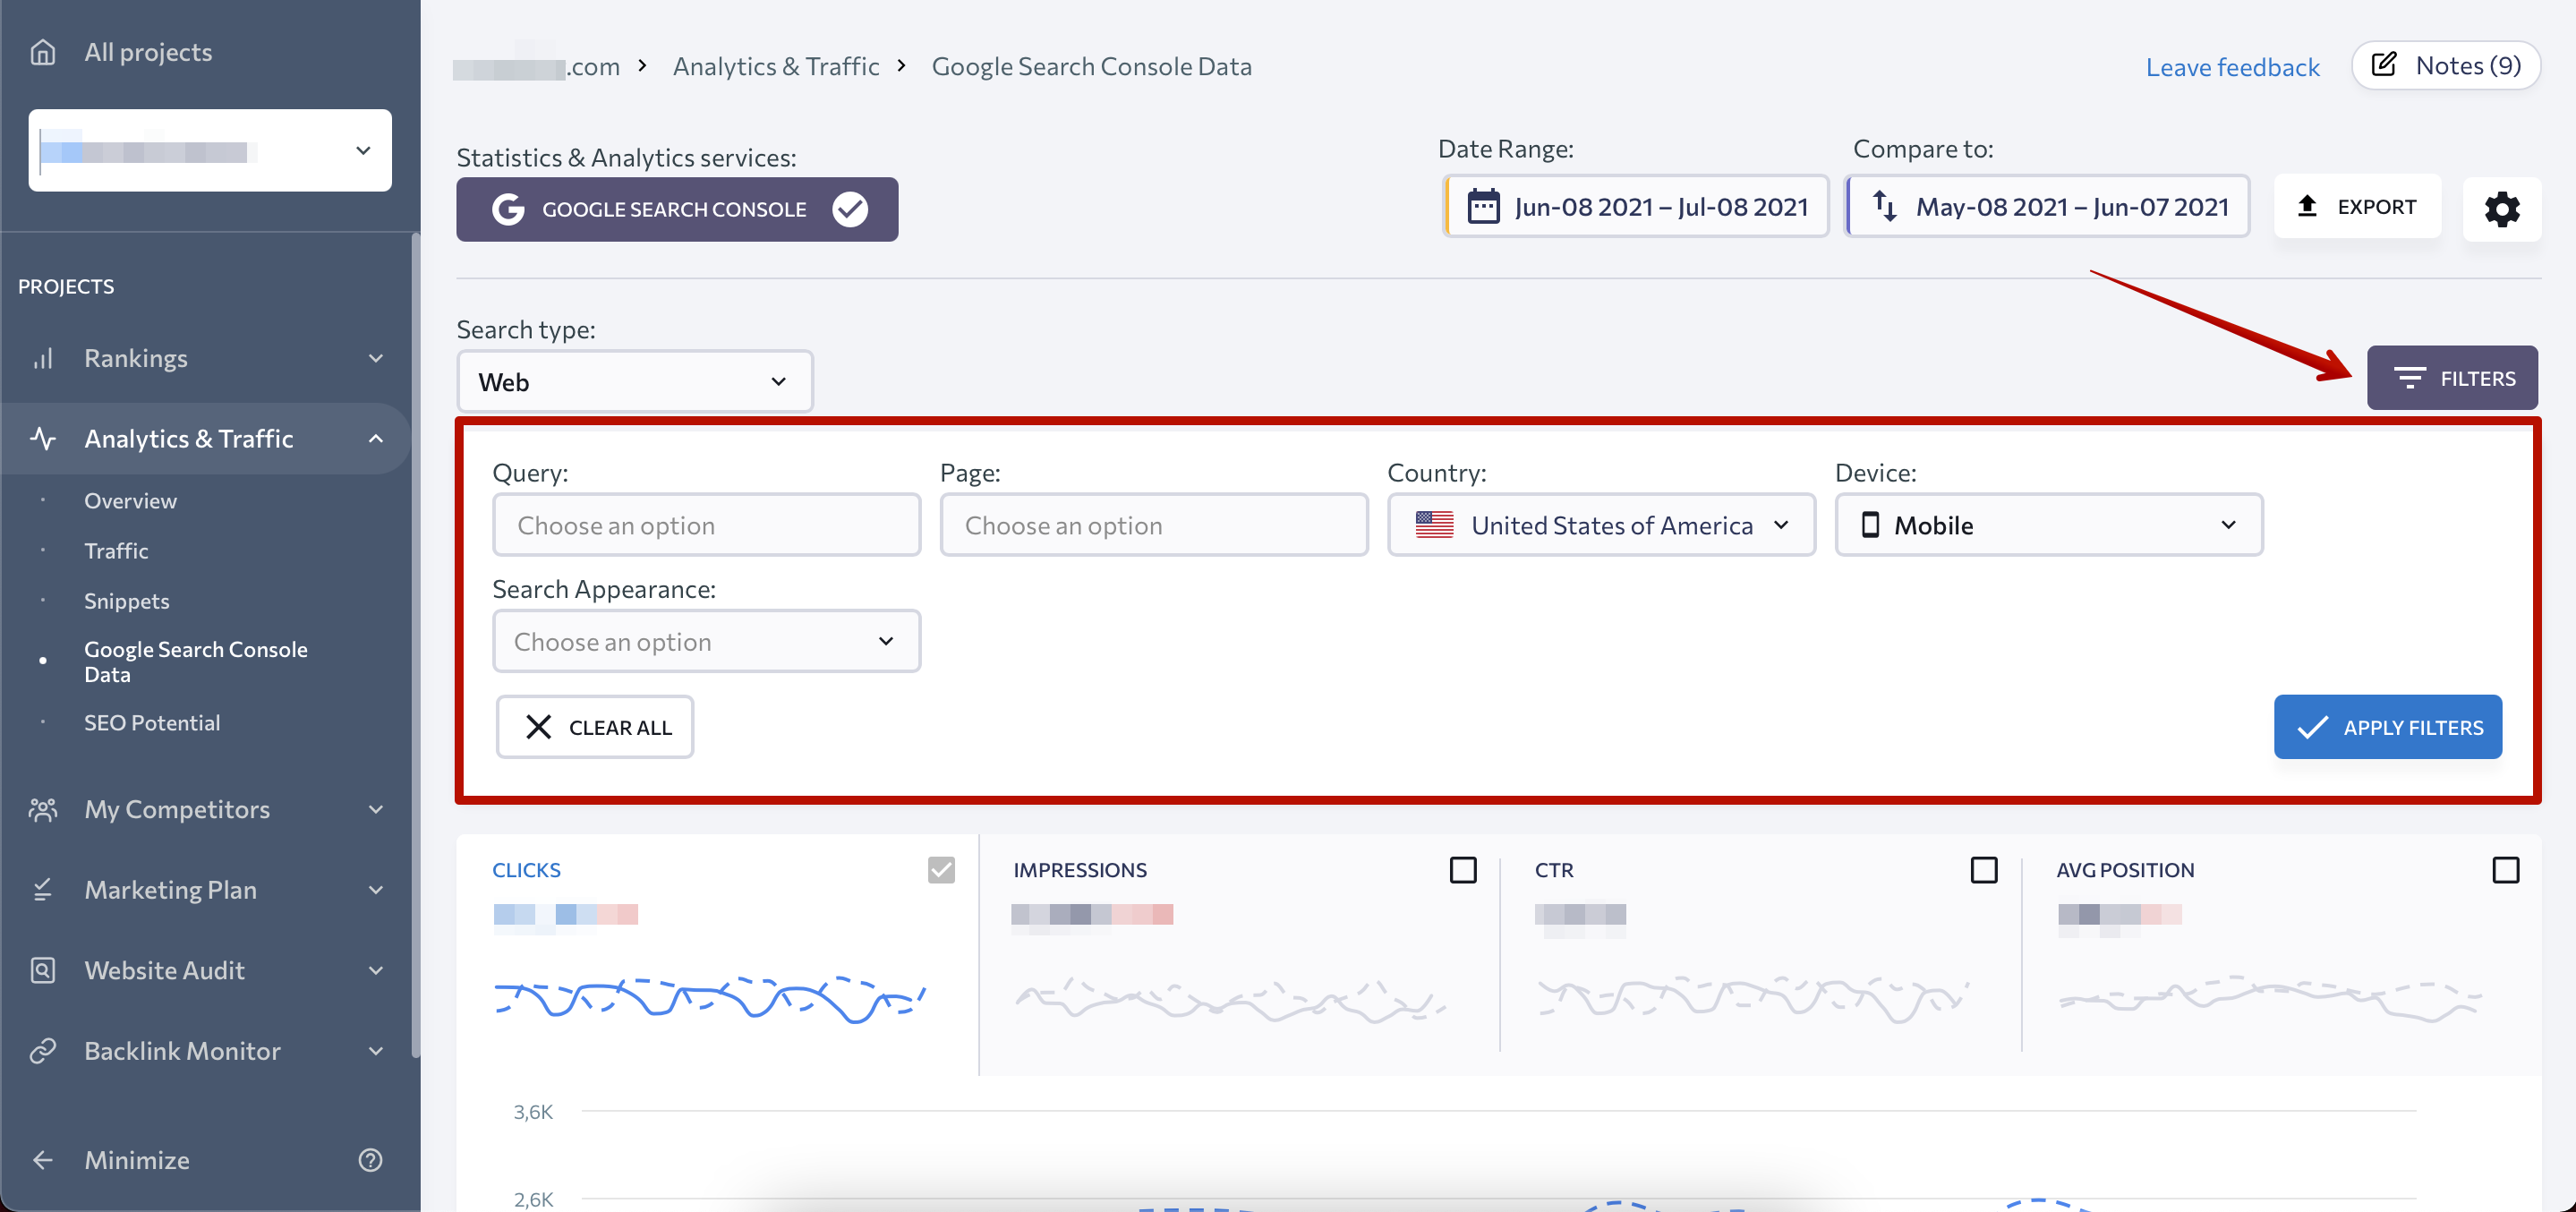 Filter update to GSC data in Analytics and Traffic